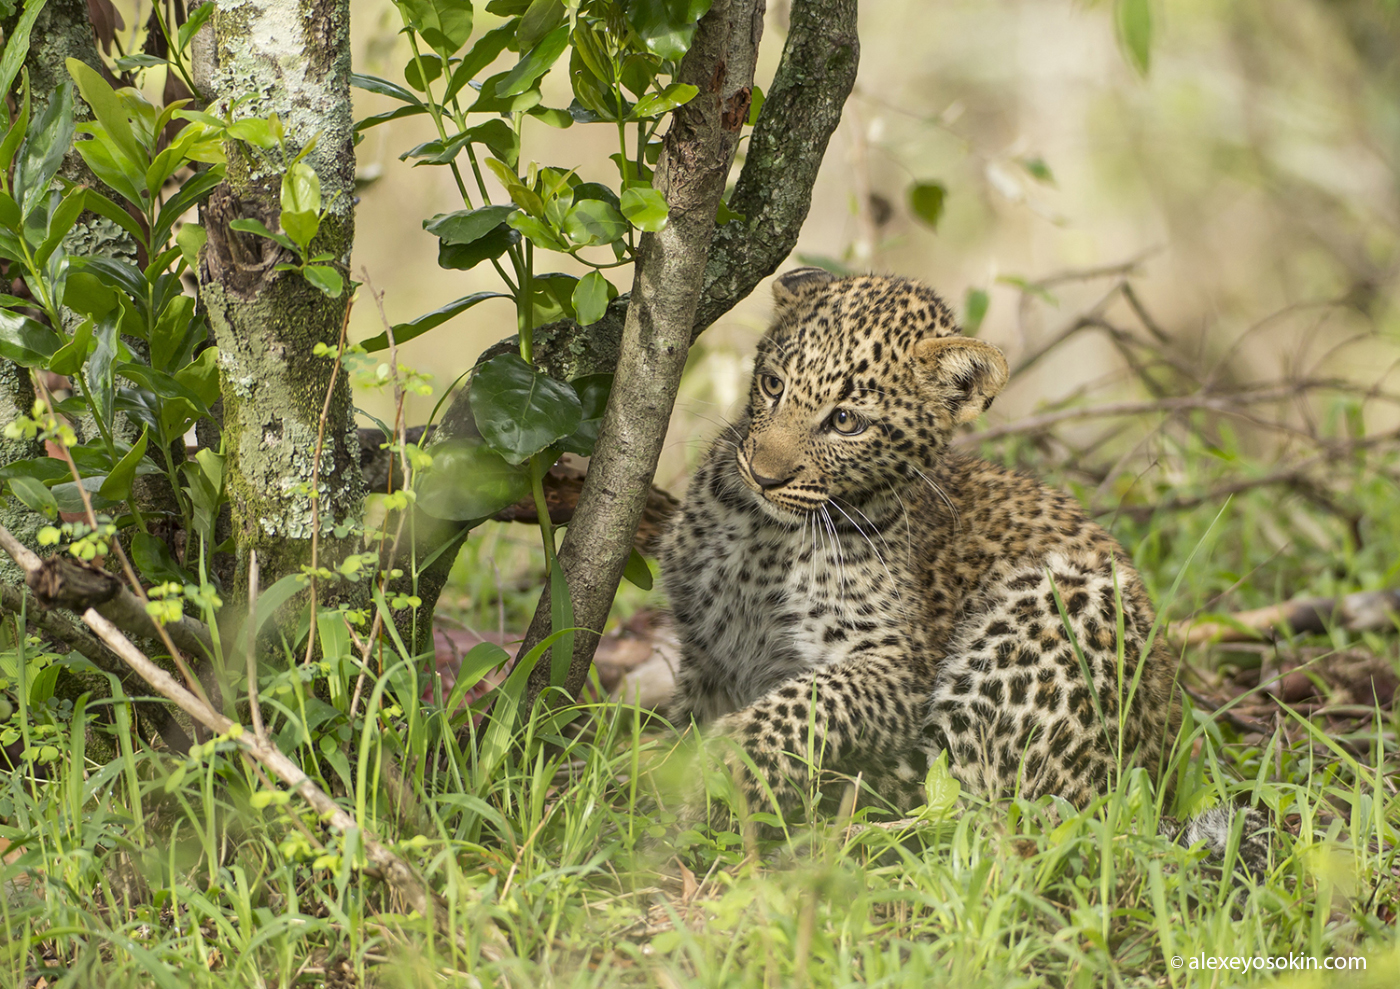 Leopard_lerean_poly_ao. oct.2015-4.jpg